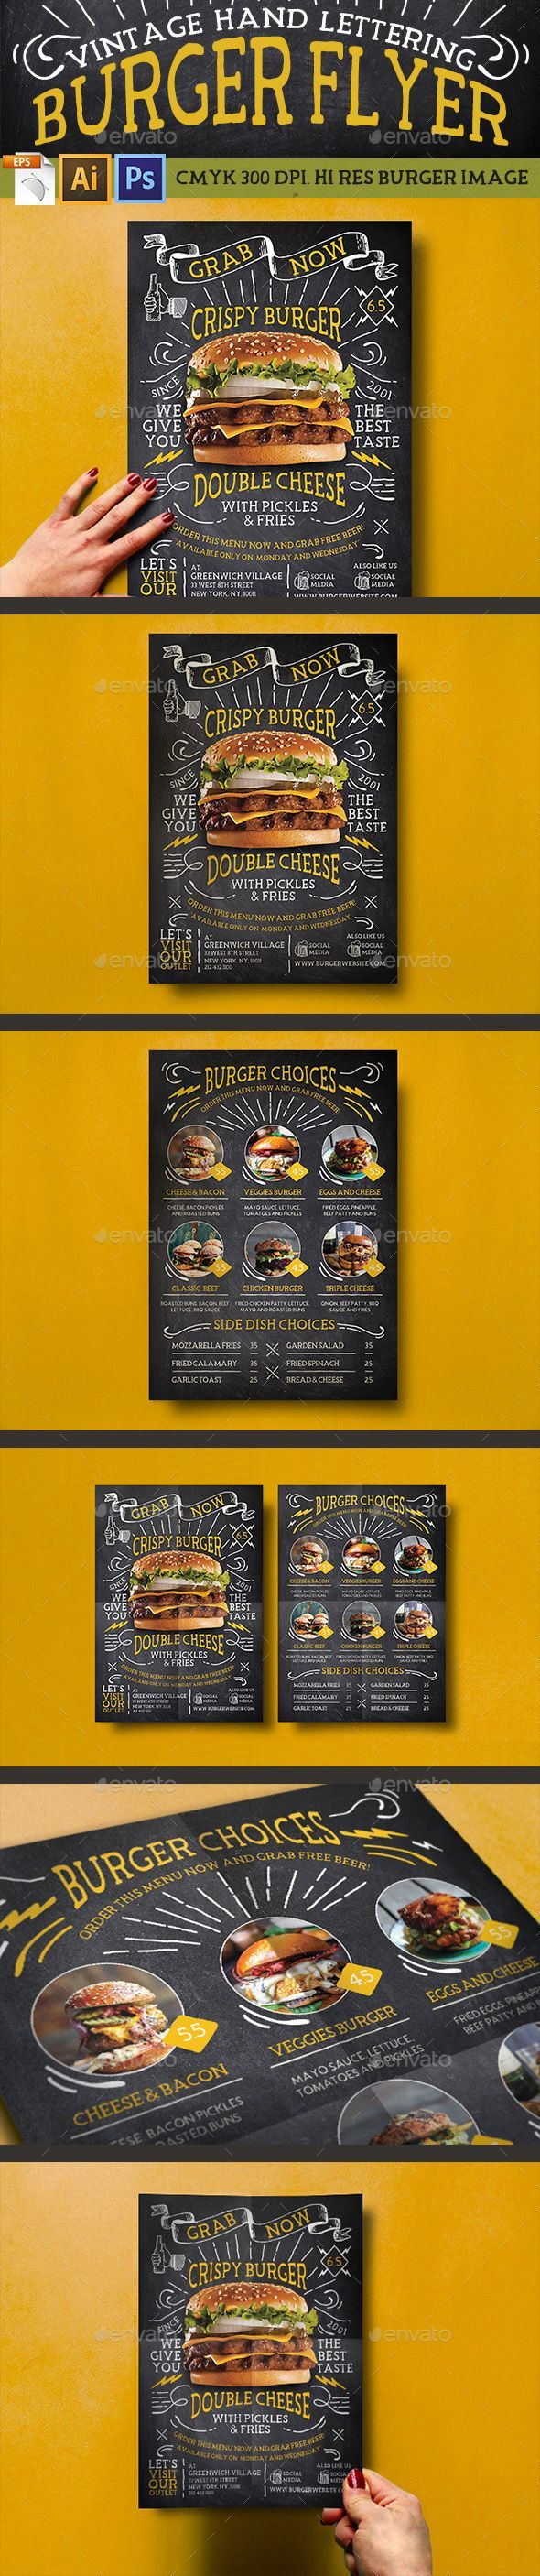 Vintage Hand Lettering Burger Flyer  #badge menu #print design #burger menu • Click here to download ! http://graphicriver.net/item/vintage-hand-lettering-burger-flyer/16105285?ref=pxcr                                                                                                                                                                                 Más